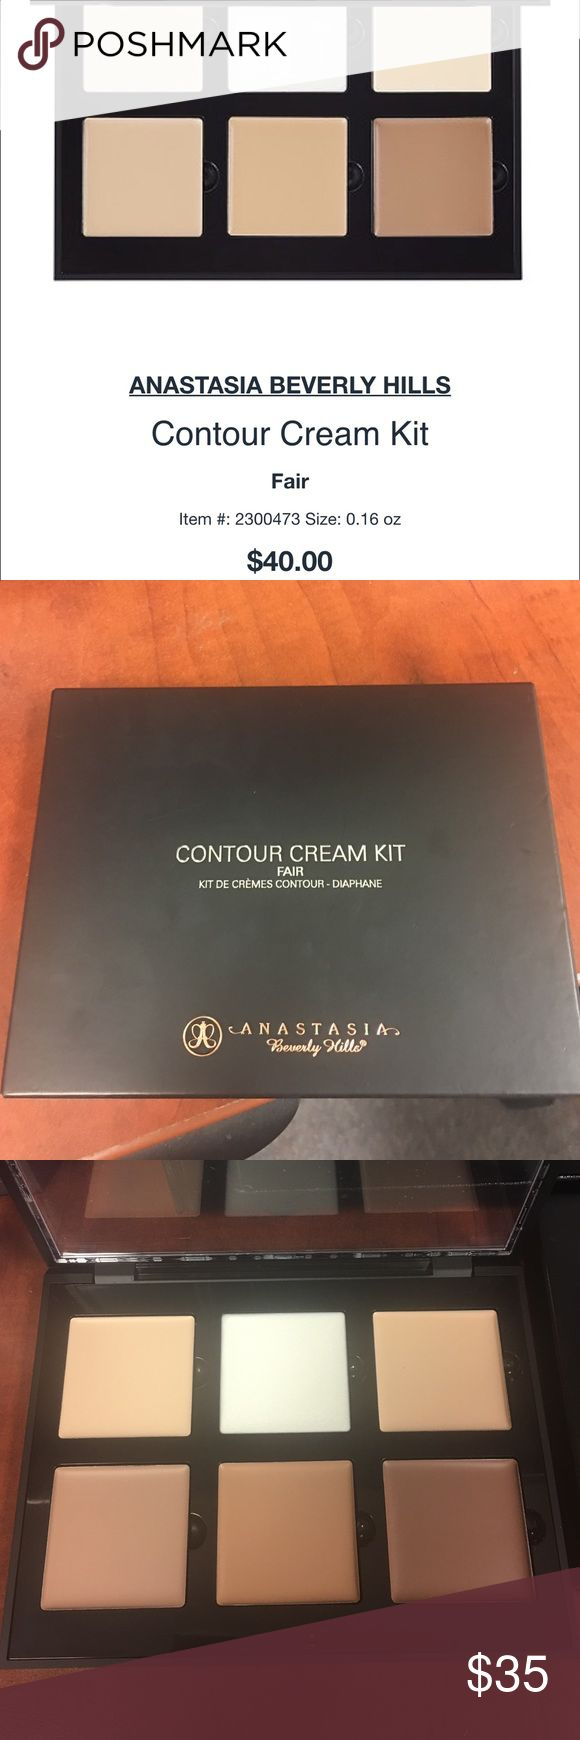 Anastasia cream contour kit New in box color: Fair Anastasia Beverly Hills Makeup